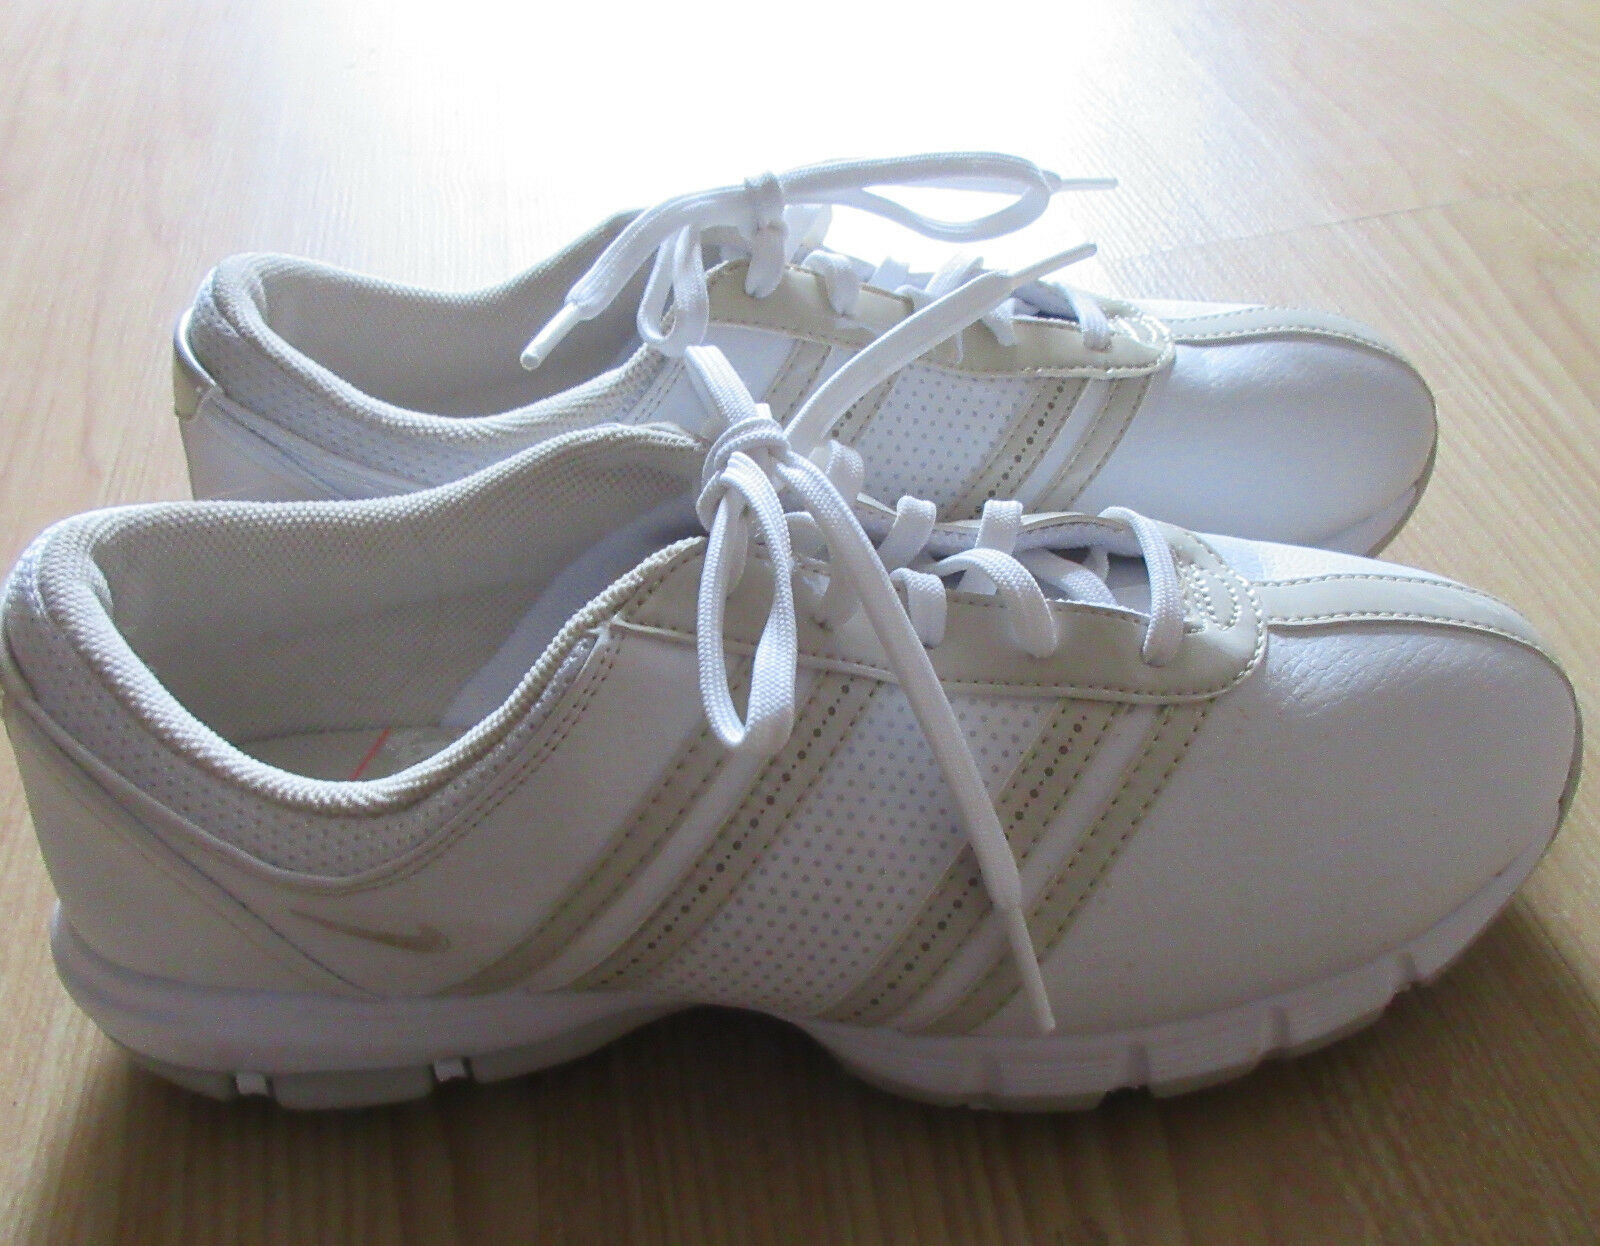 Nike Delight Tac Spikes White & Birch Women's Golf Shoes Comfortable Casual wild